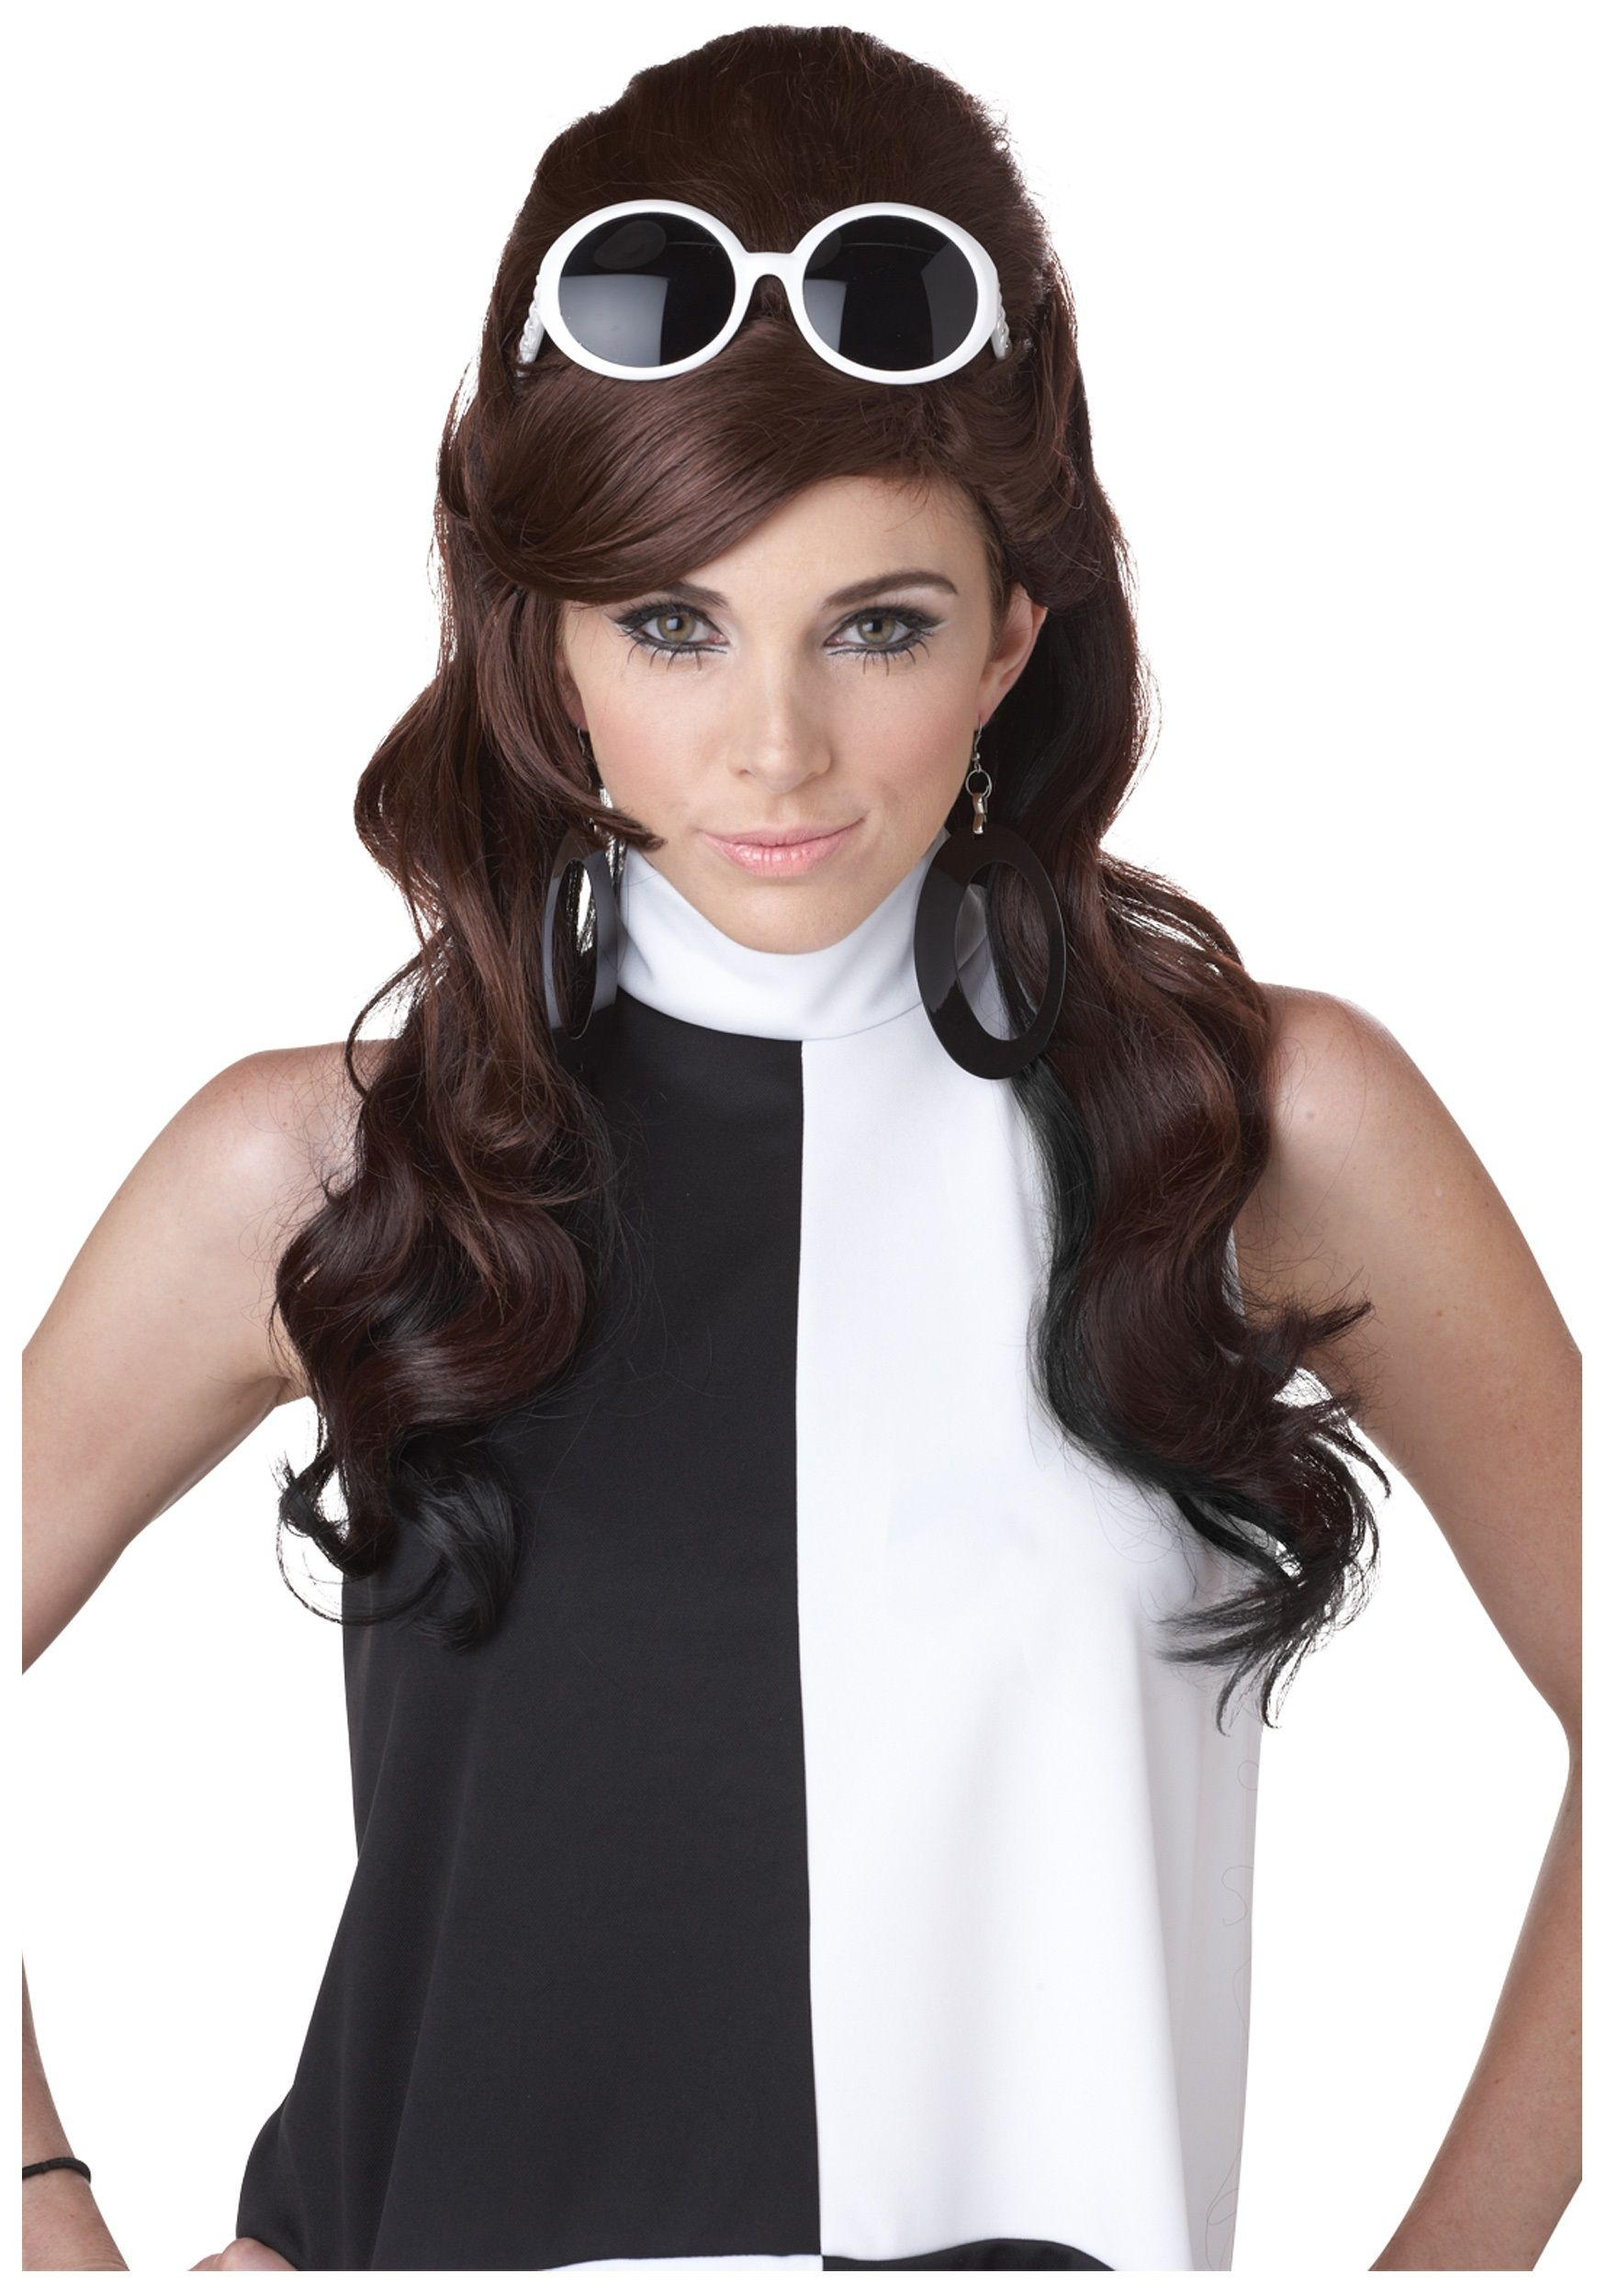 Black /& White Wig Ladies Halloween Fancy Dress 60s 70s Adults Costume Accessory